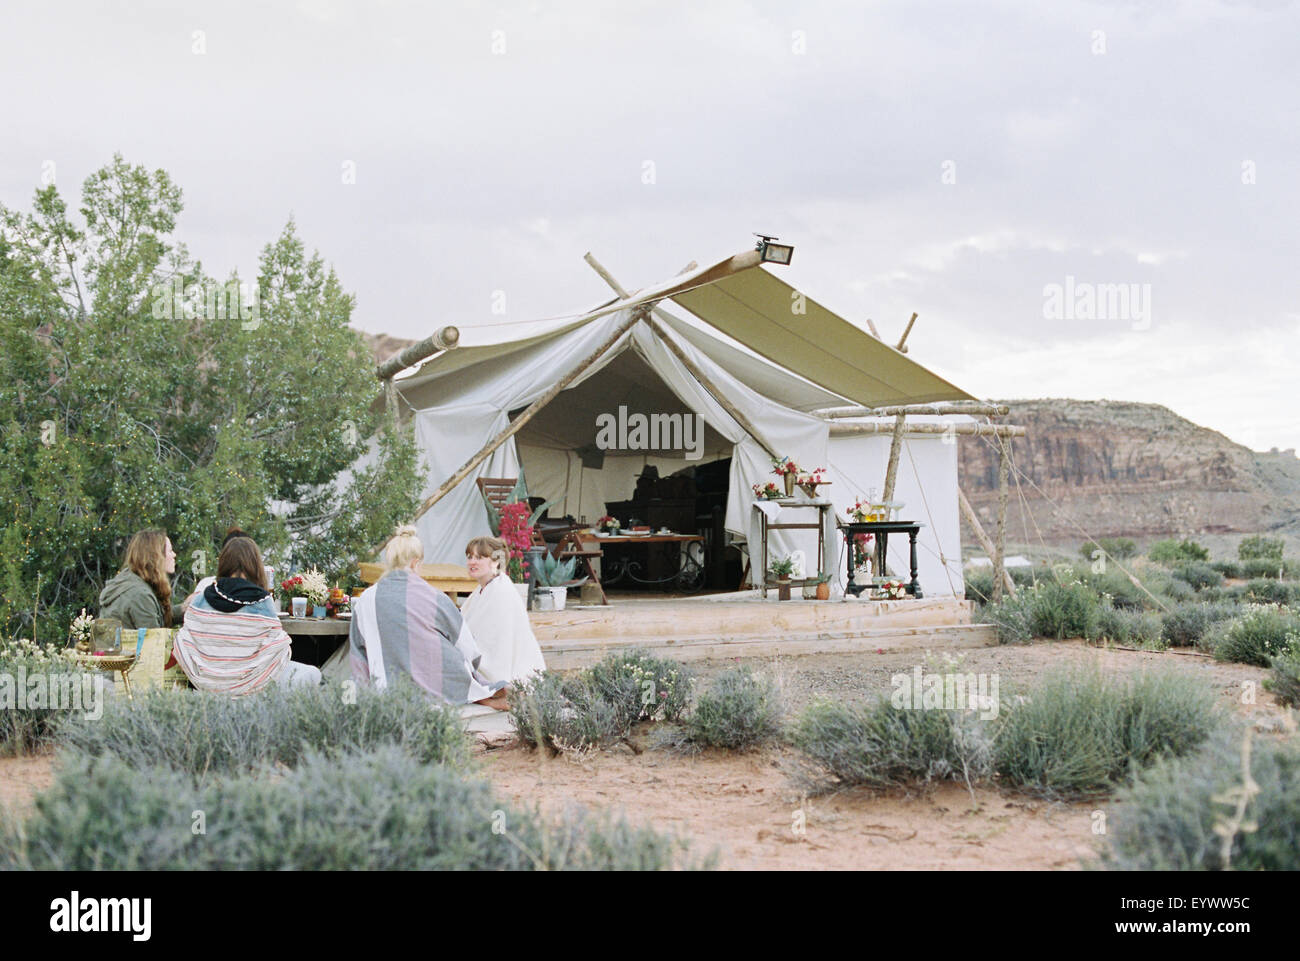 Group of women friends enjoying an outdoor meal in a desert by a large tent. - Stock Image